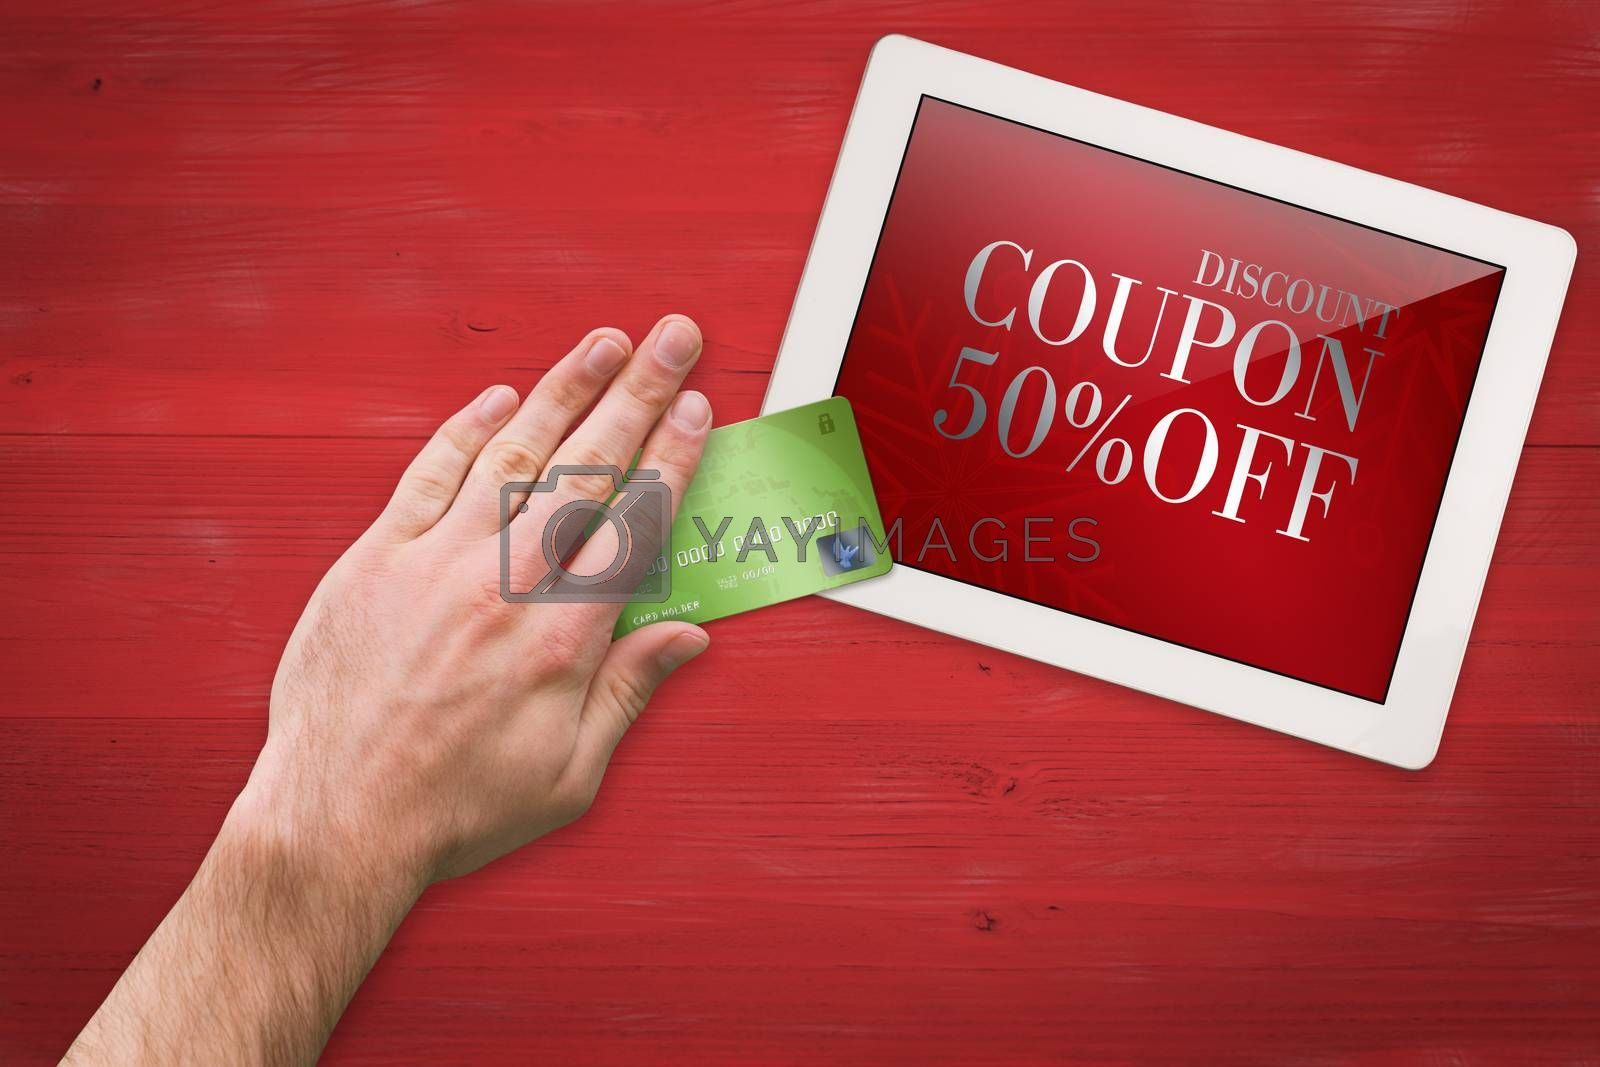 Hand touching against sale advertisement